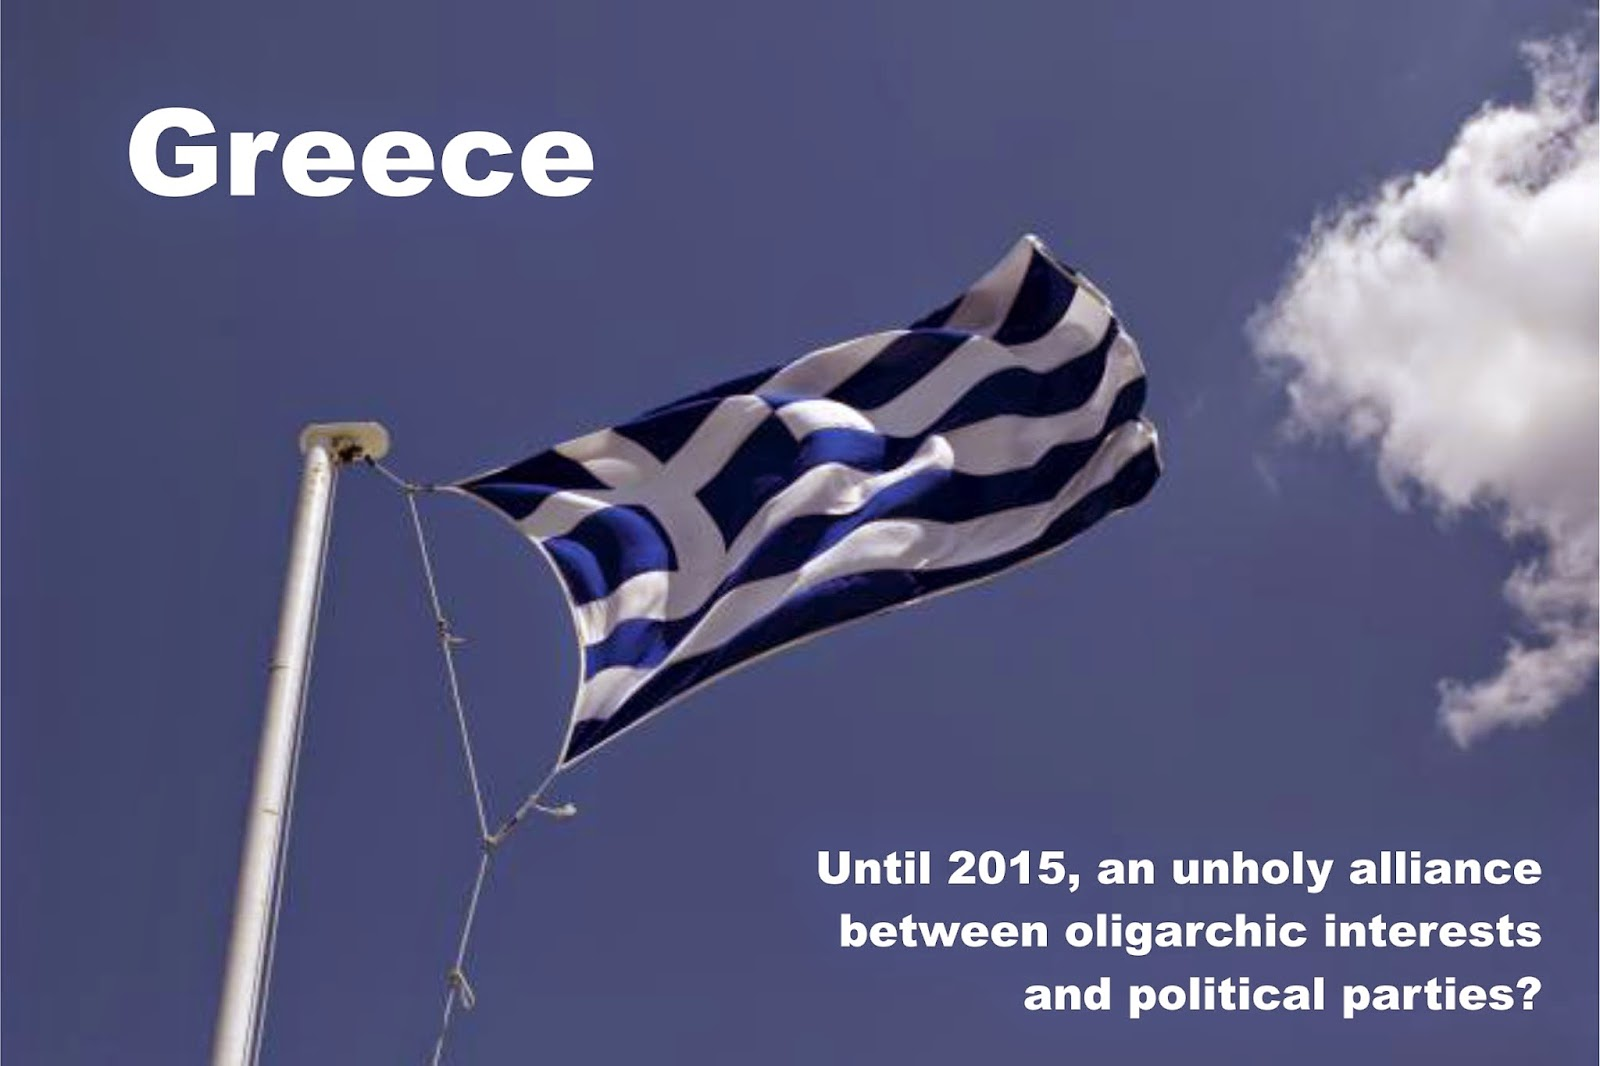 http://1.bp.blogspot.com/-ysClcZK4Us8/VUty3HuDH-I/AAAAAAAAHUs/4U_H8lj02Jc/s1600/Greece%2B%26%2BEurope.%2BYanis%2BVaroufakis%2C%2BAlexis%2BTsipras%2Band%2BAngela%2BMerkel.%2B%231ab.jpg?SSImageQuality=Full